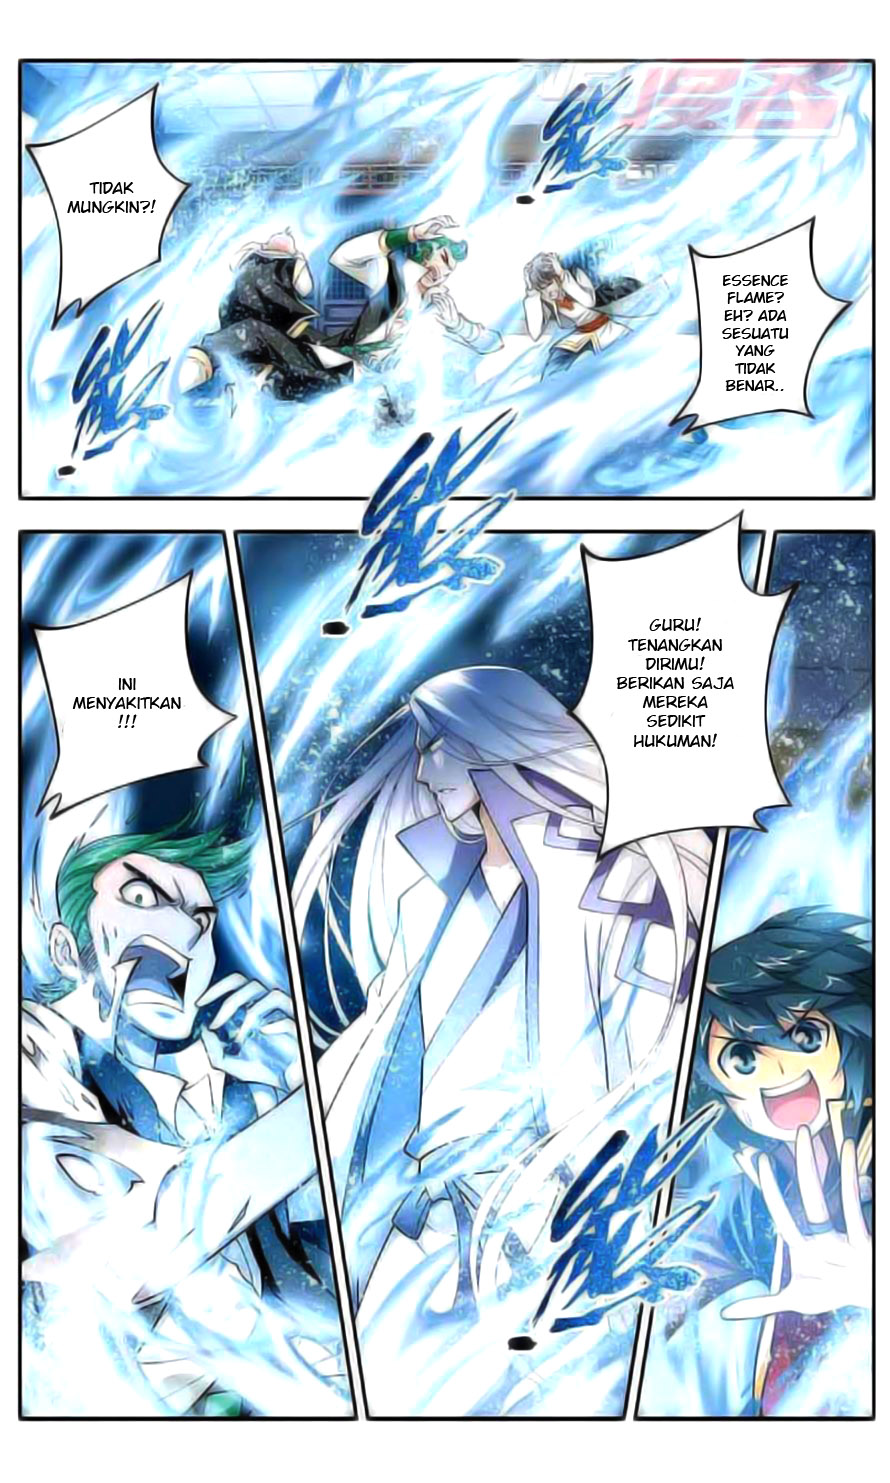 Dilarang COPAS - situs resmi www.mangacanblog.com - Komik battle through heaven 038 - chapter 38 39 Indonesia battle through heaven 038 - chapter 38 Terbaru 4|Baca Manga Komik Indonesia|Mangacan